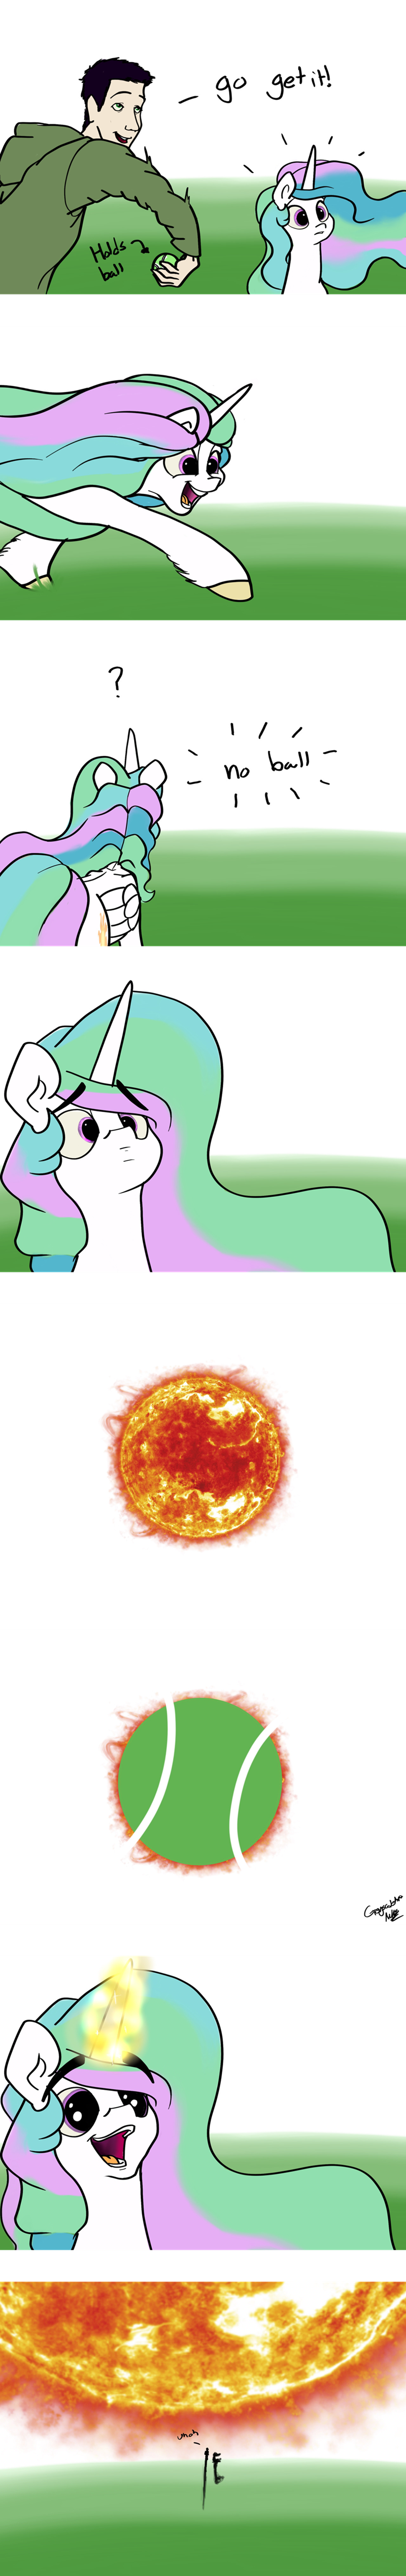 comic,princess celestia,acting like animals